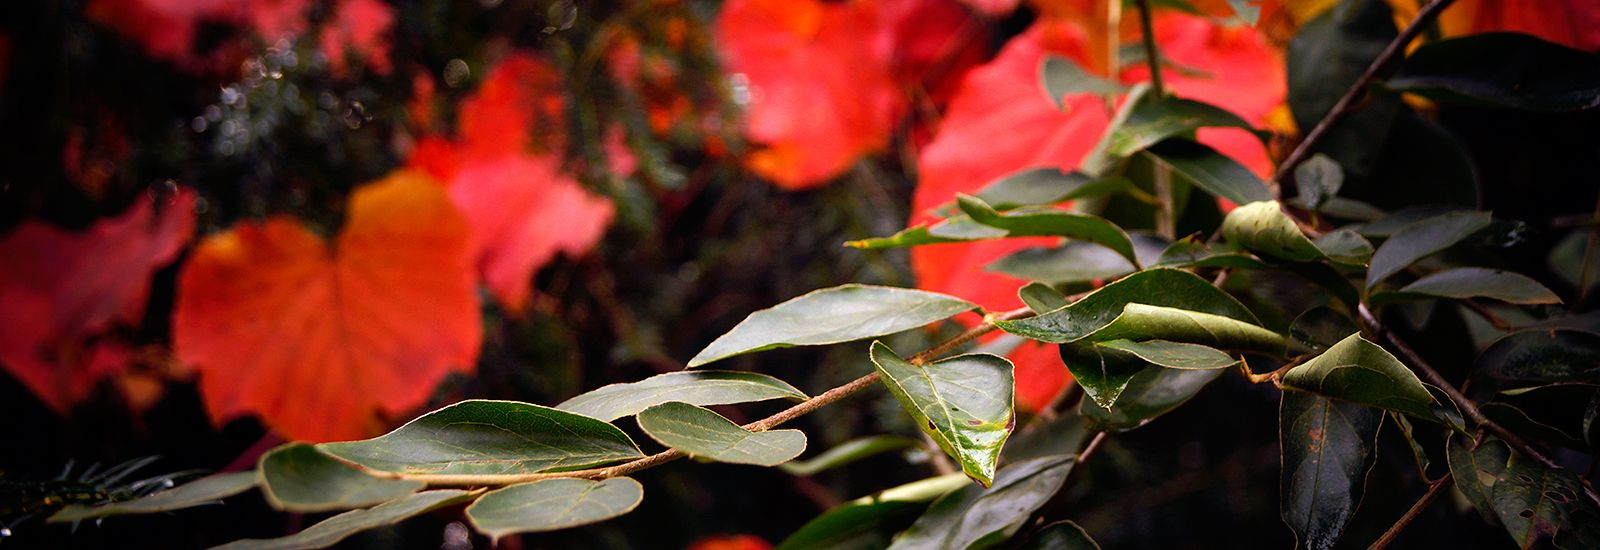 A close up of red flowers and leaves